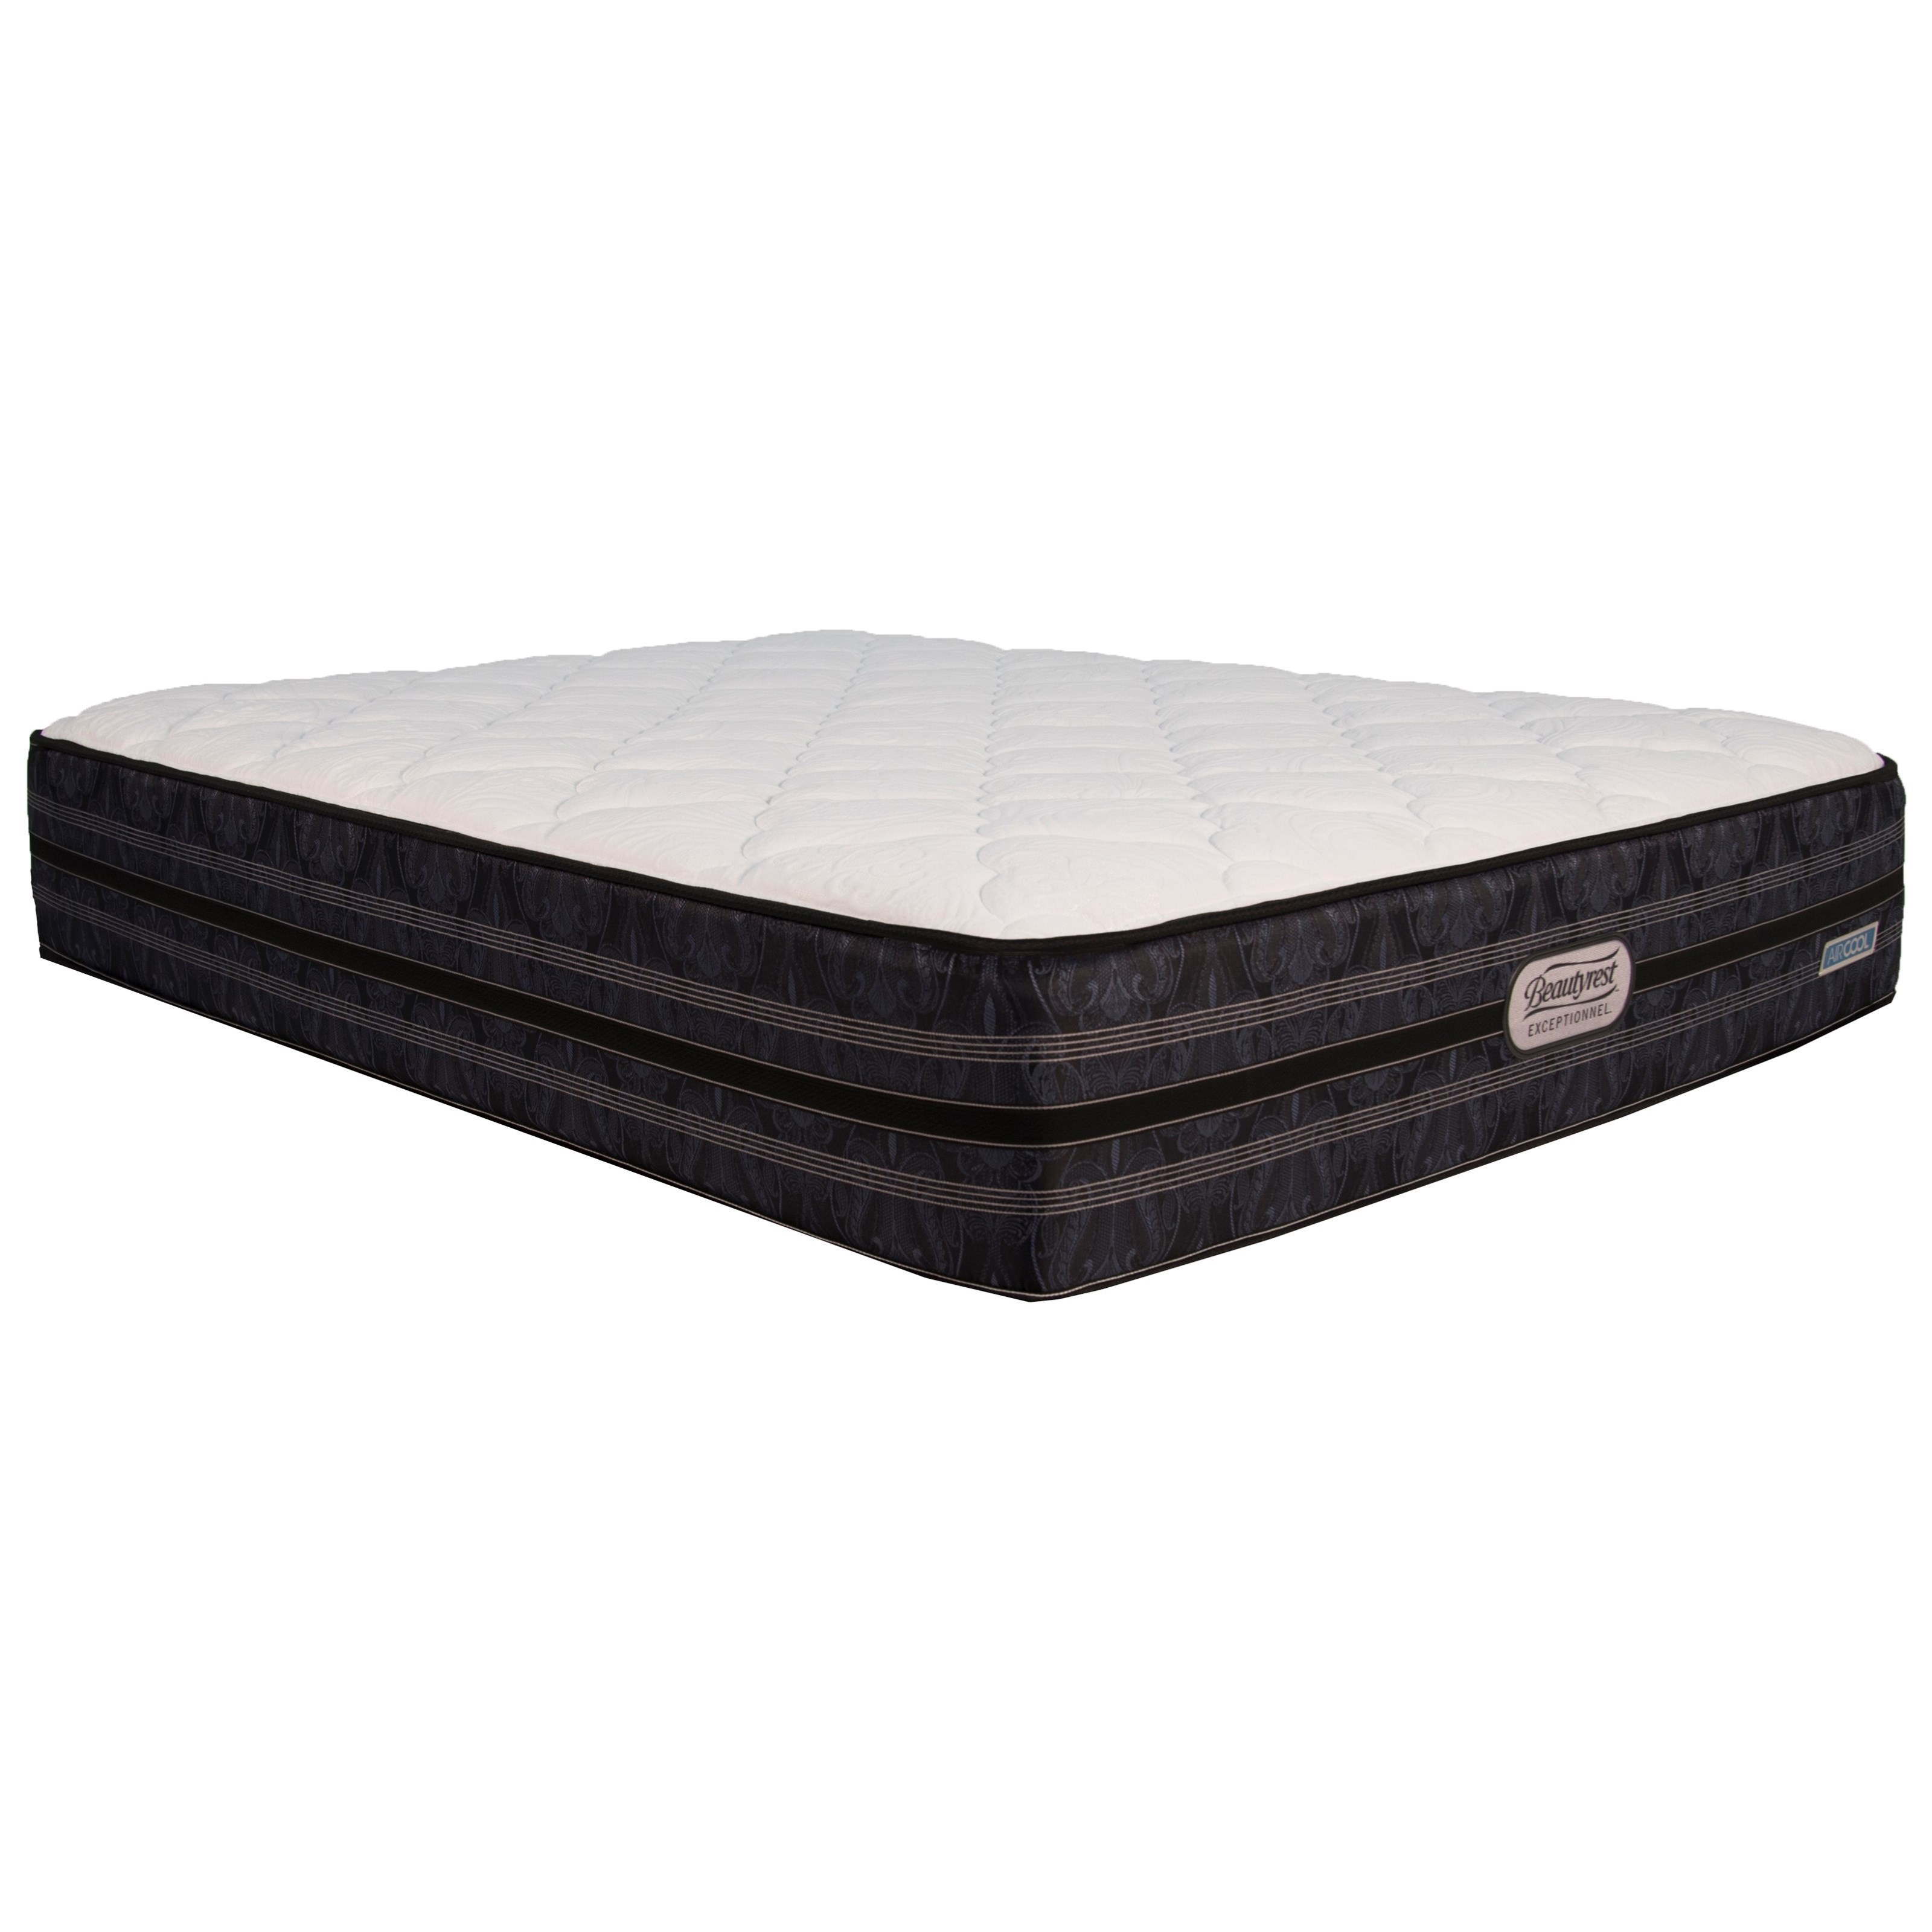 BR Exceptionnel Caxton Firm Full Firm Coil on Coil Mattress by Beautyrest Canada at Jordan's Home Furnishings